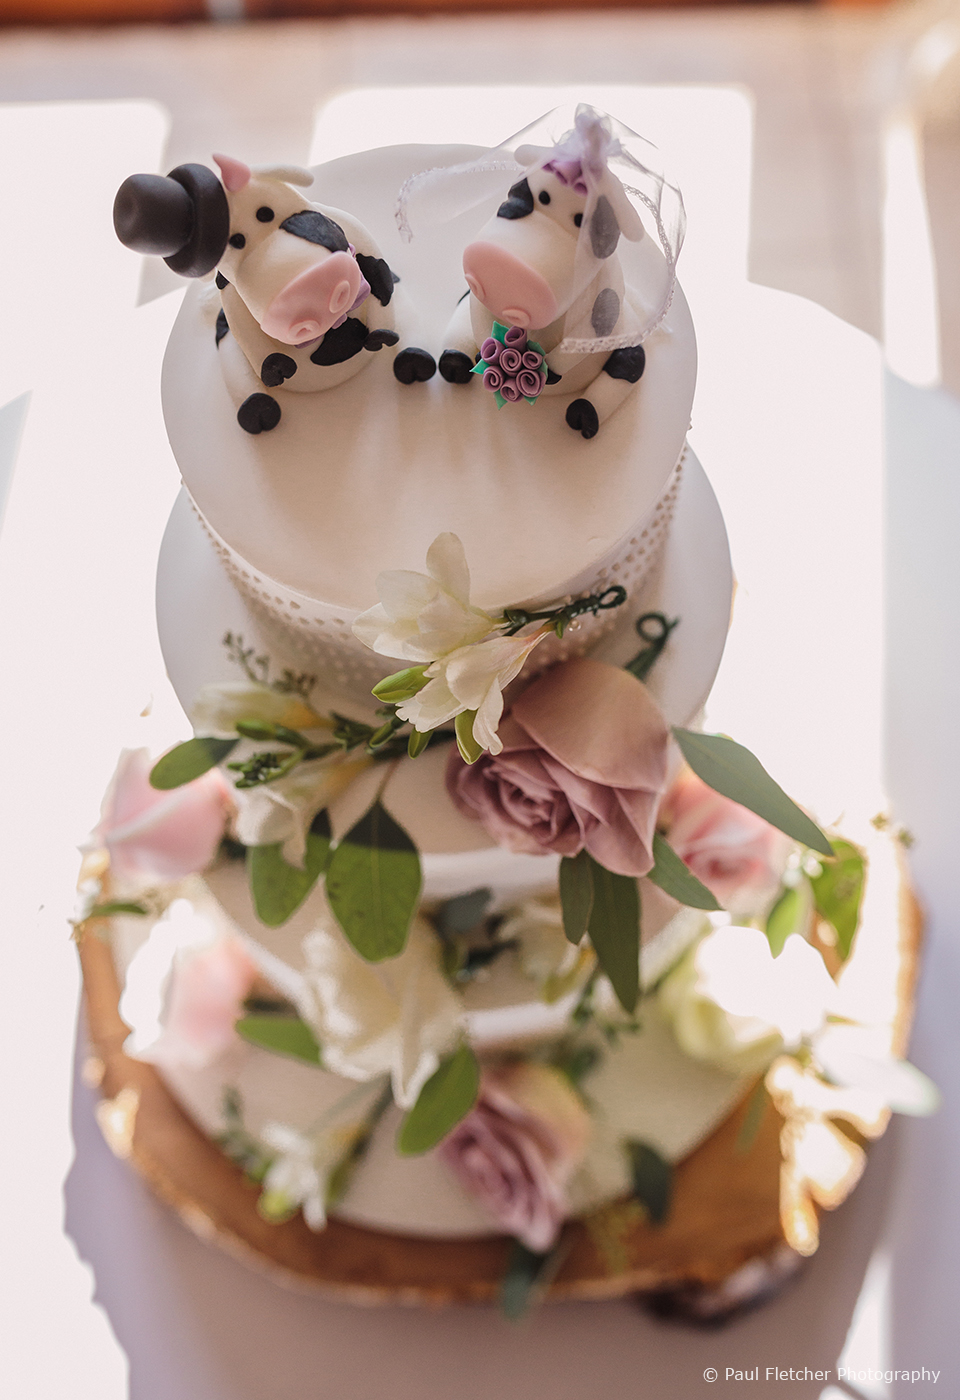 A three-tiered white wedding cake was topped with cow cake toppers for this rustic wedding at Upwaltham Barns